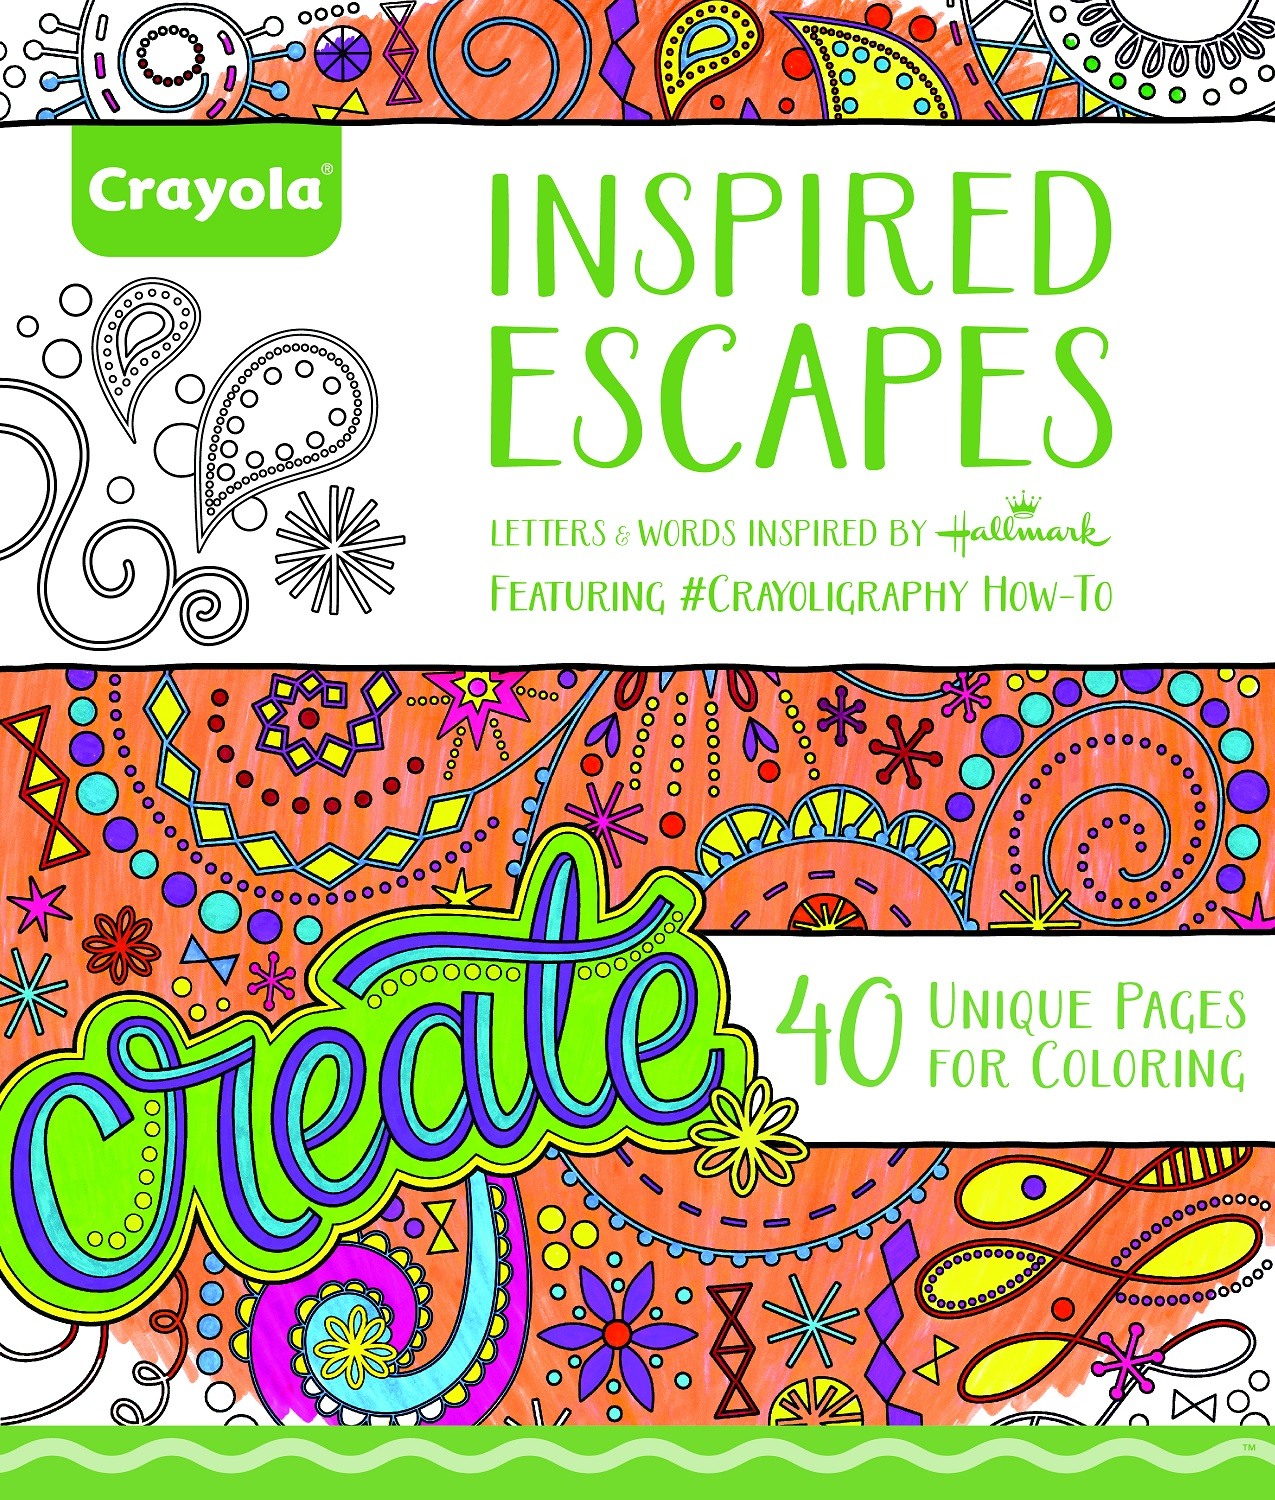 Crayola Inspired Escapes Adult Coloring Book, 40 Pages by Crayola